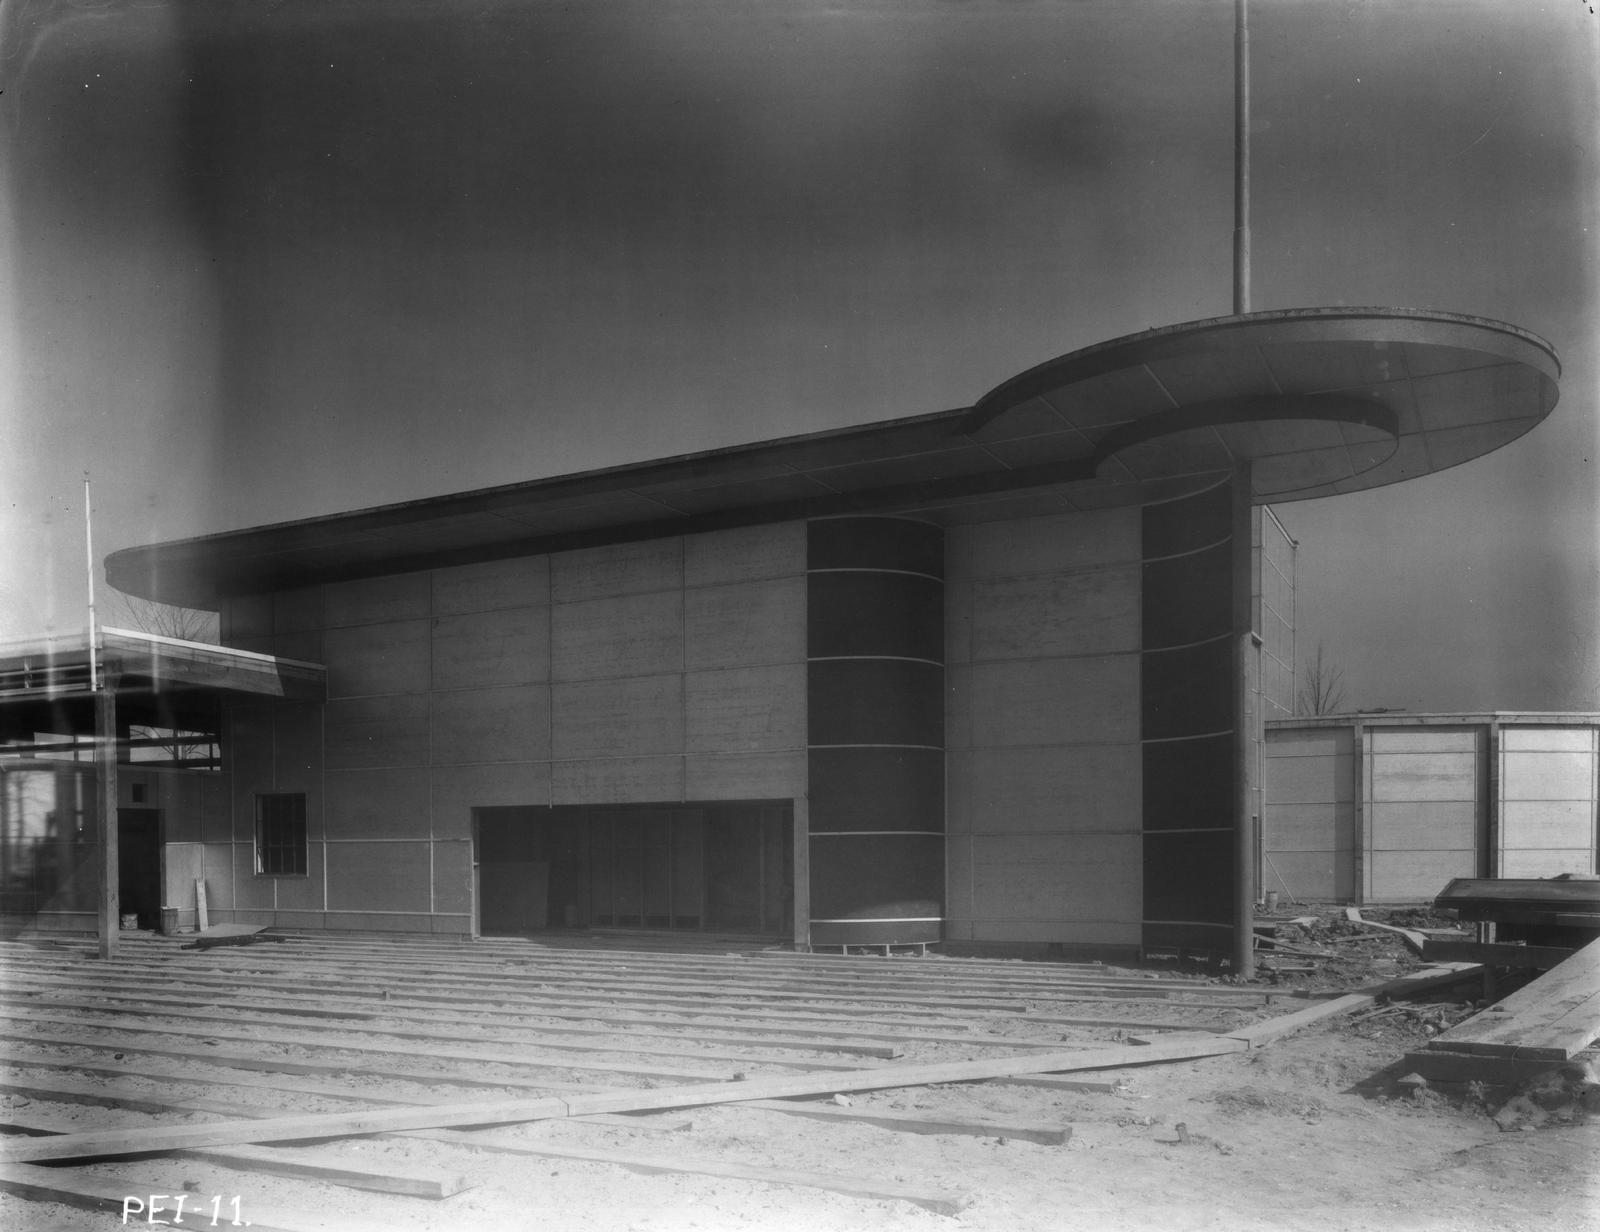 [Construction of the children's theater for the Enchanted Island exhibit at A Century of Progress. The photo was taken in March of 1933, a few months before the grand opening of the Fair.]